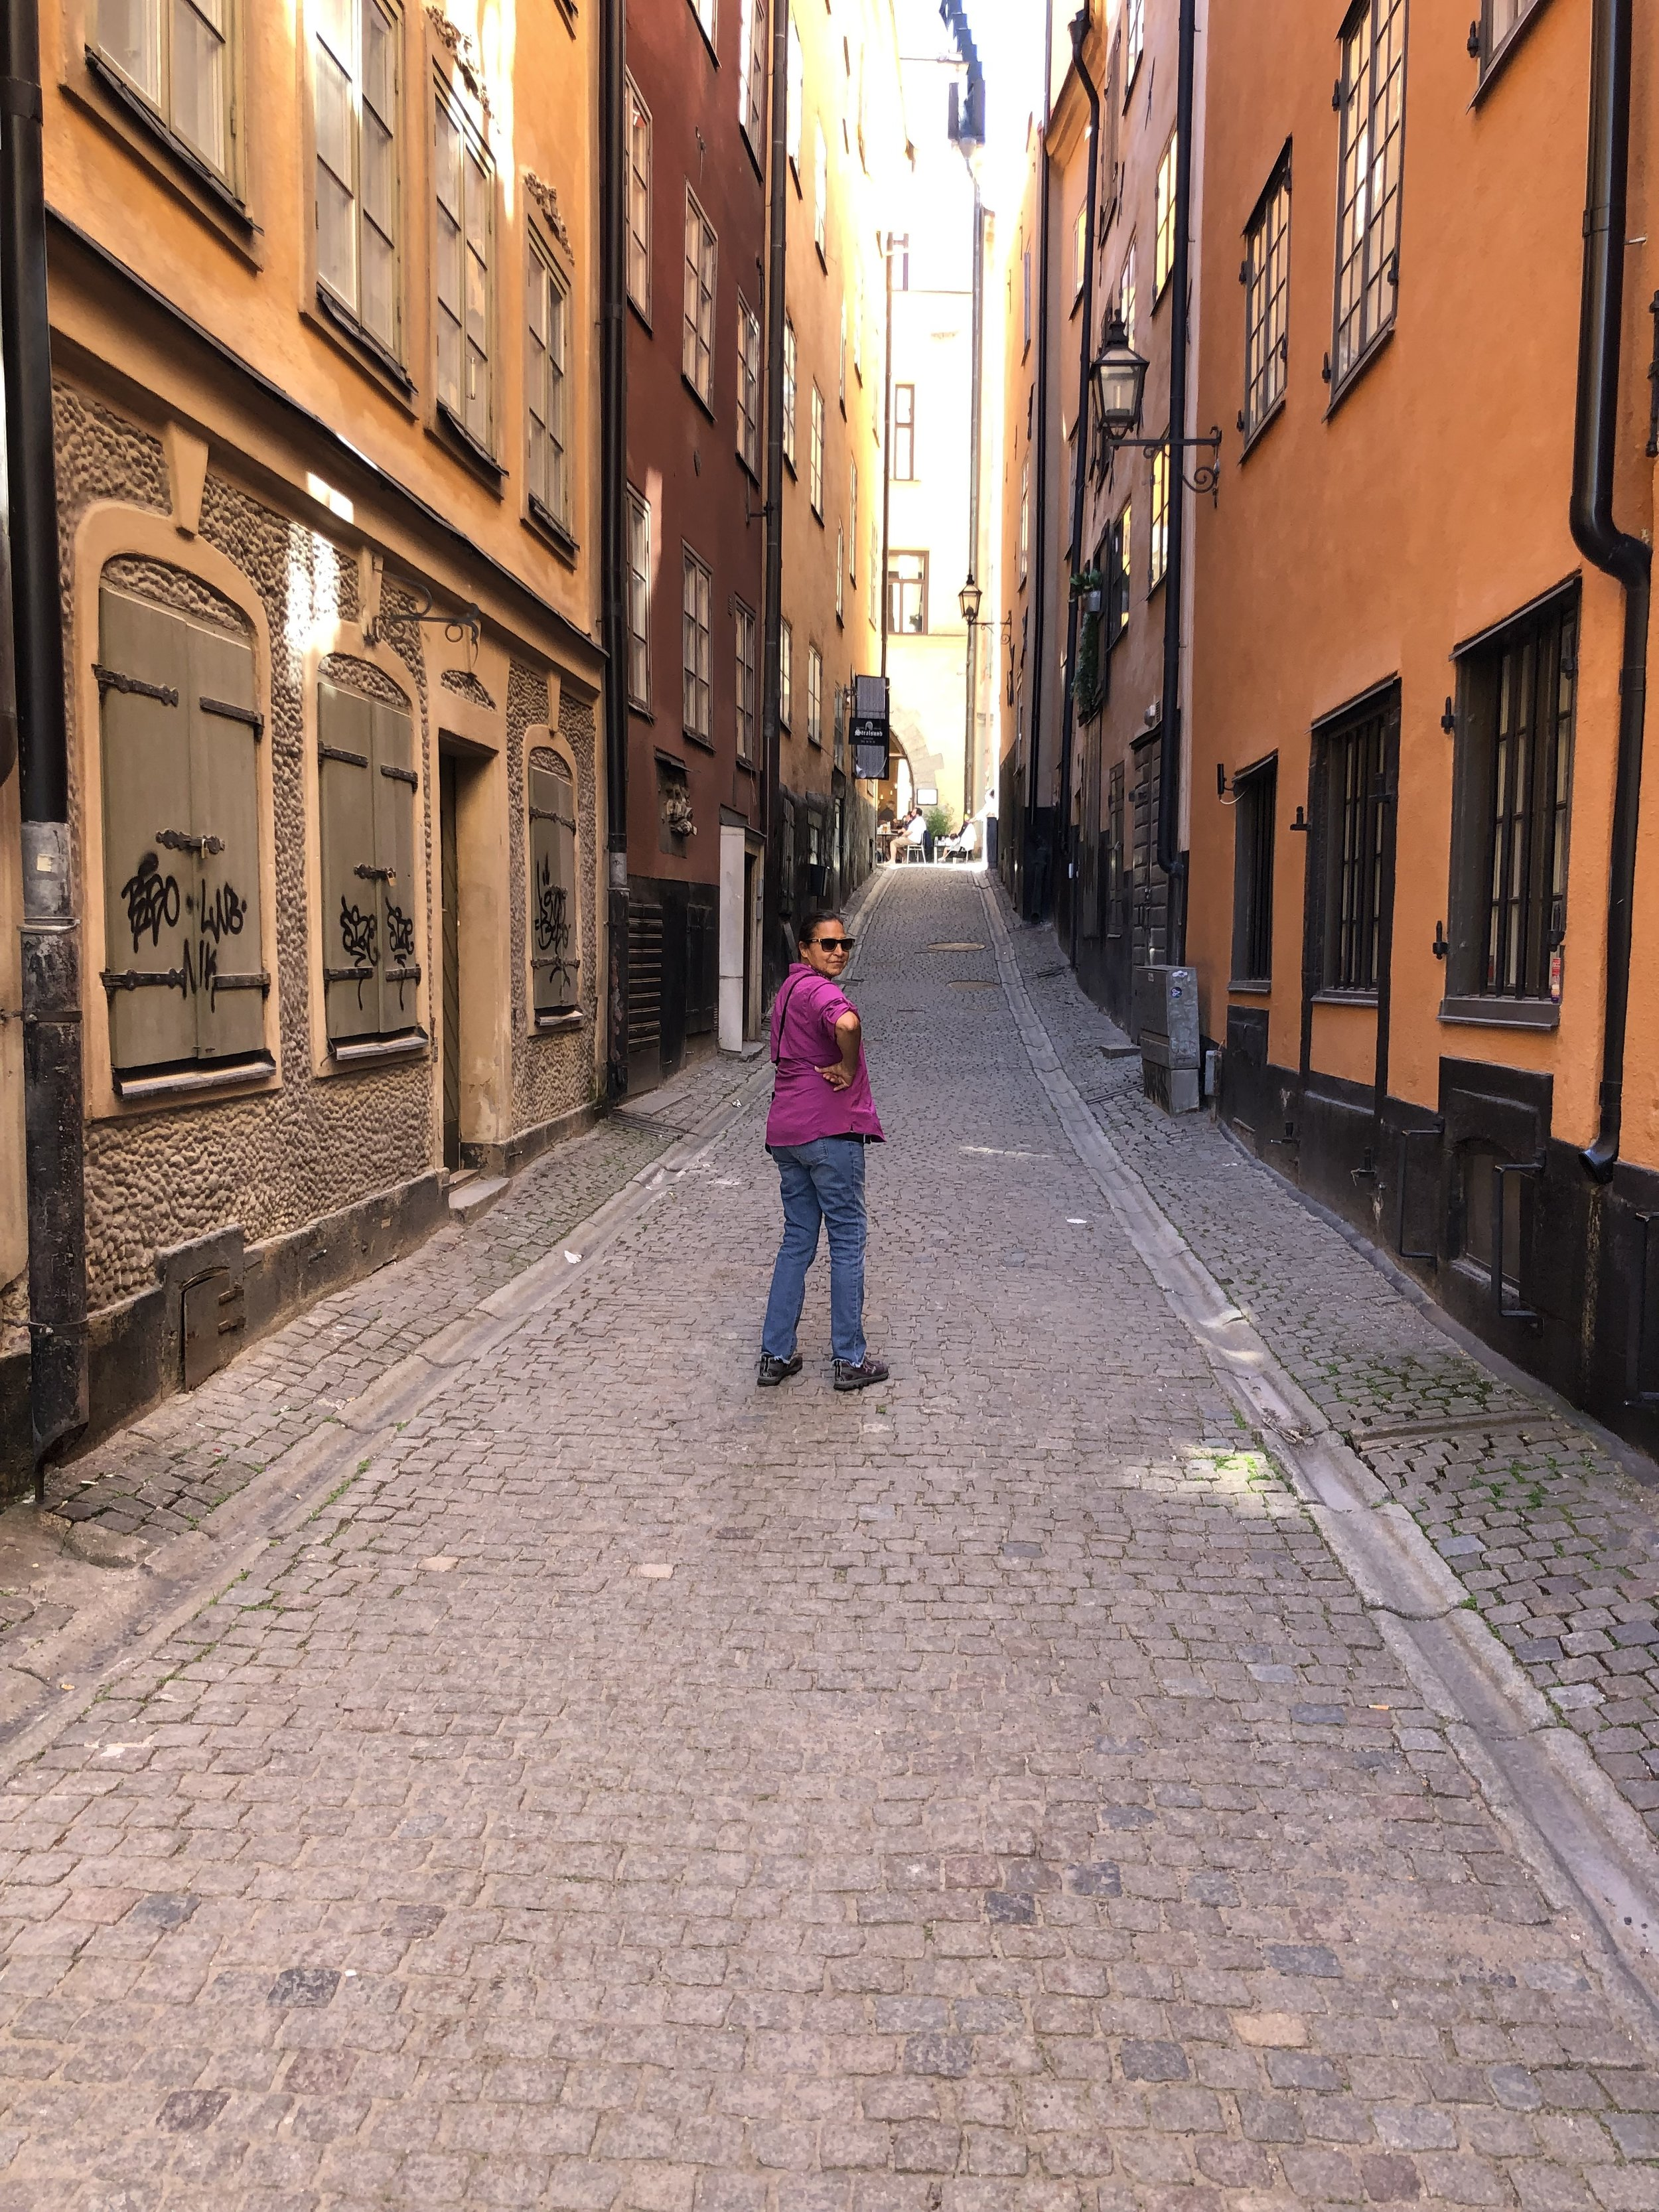 Alena heading up a narrow street in Gamla Stad, which is a old city that surrounds the royal palace.